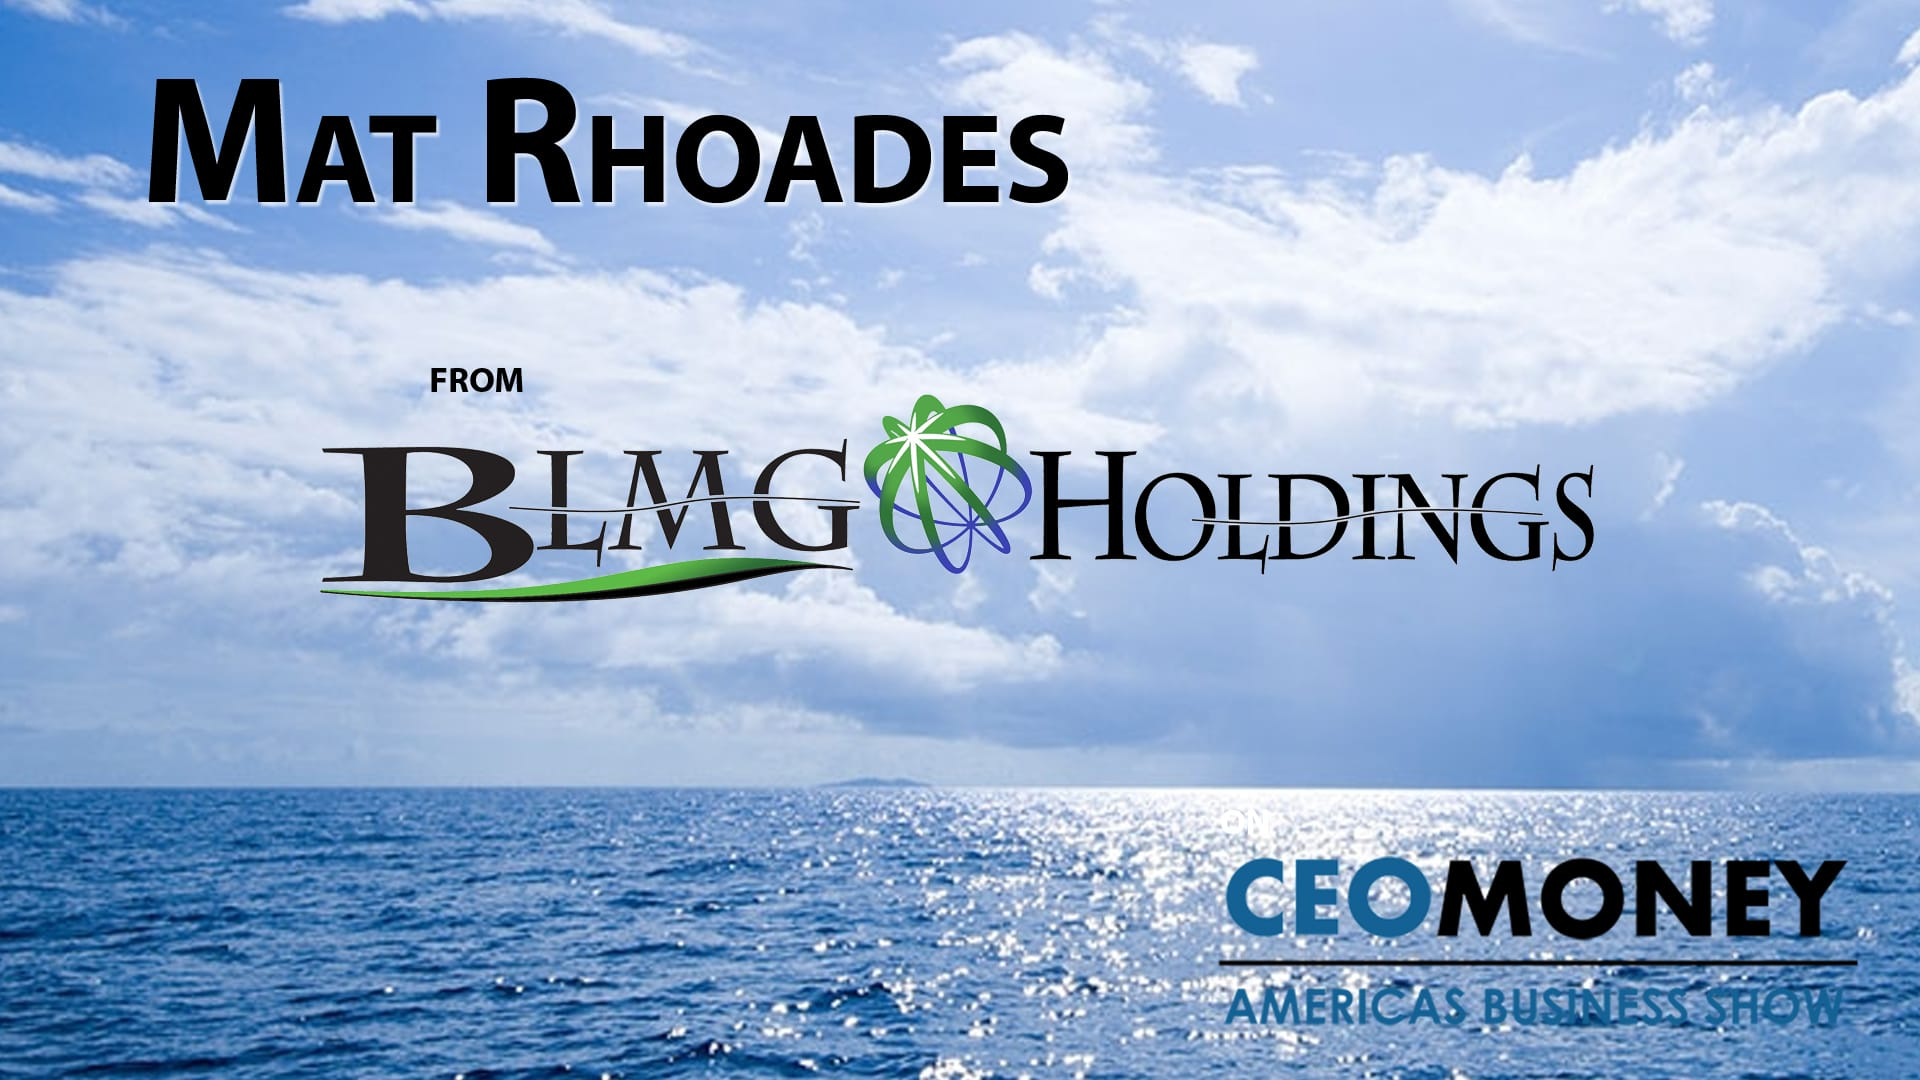 Mat Rhoades on BLMG's ethos of creating environmental sustainability and social responsibility